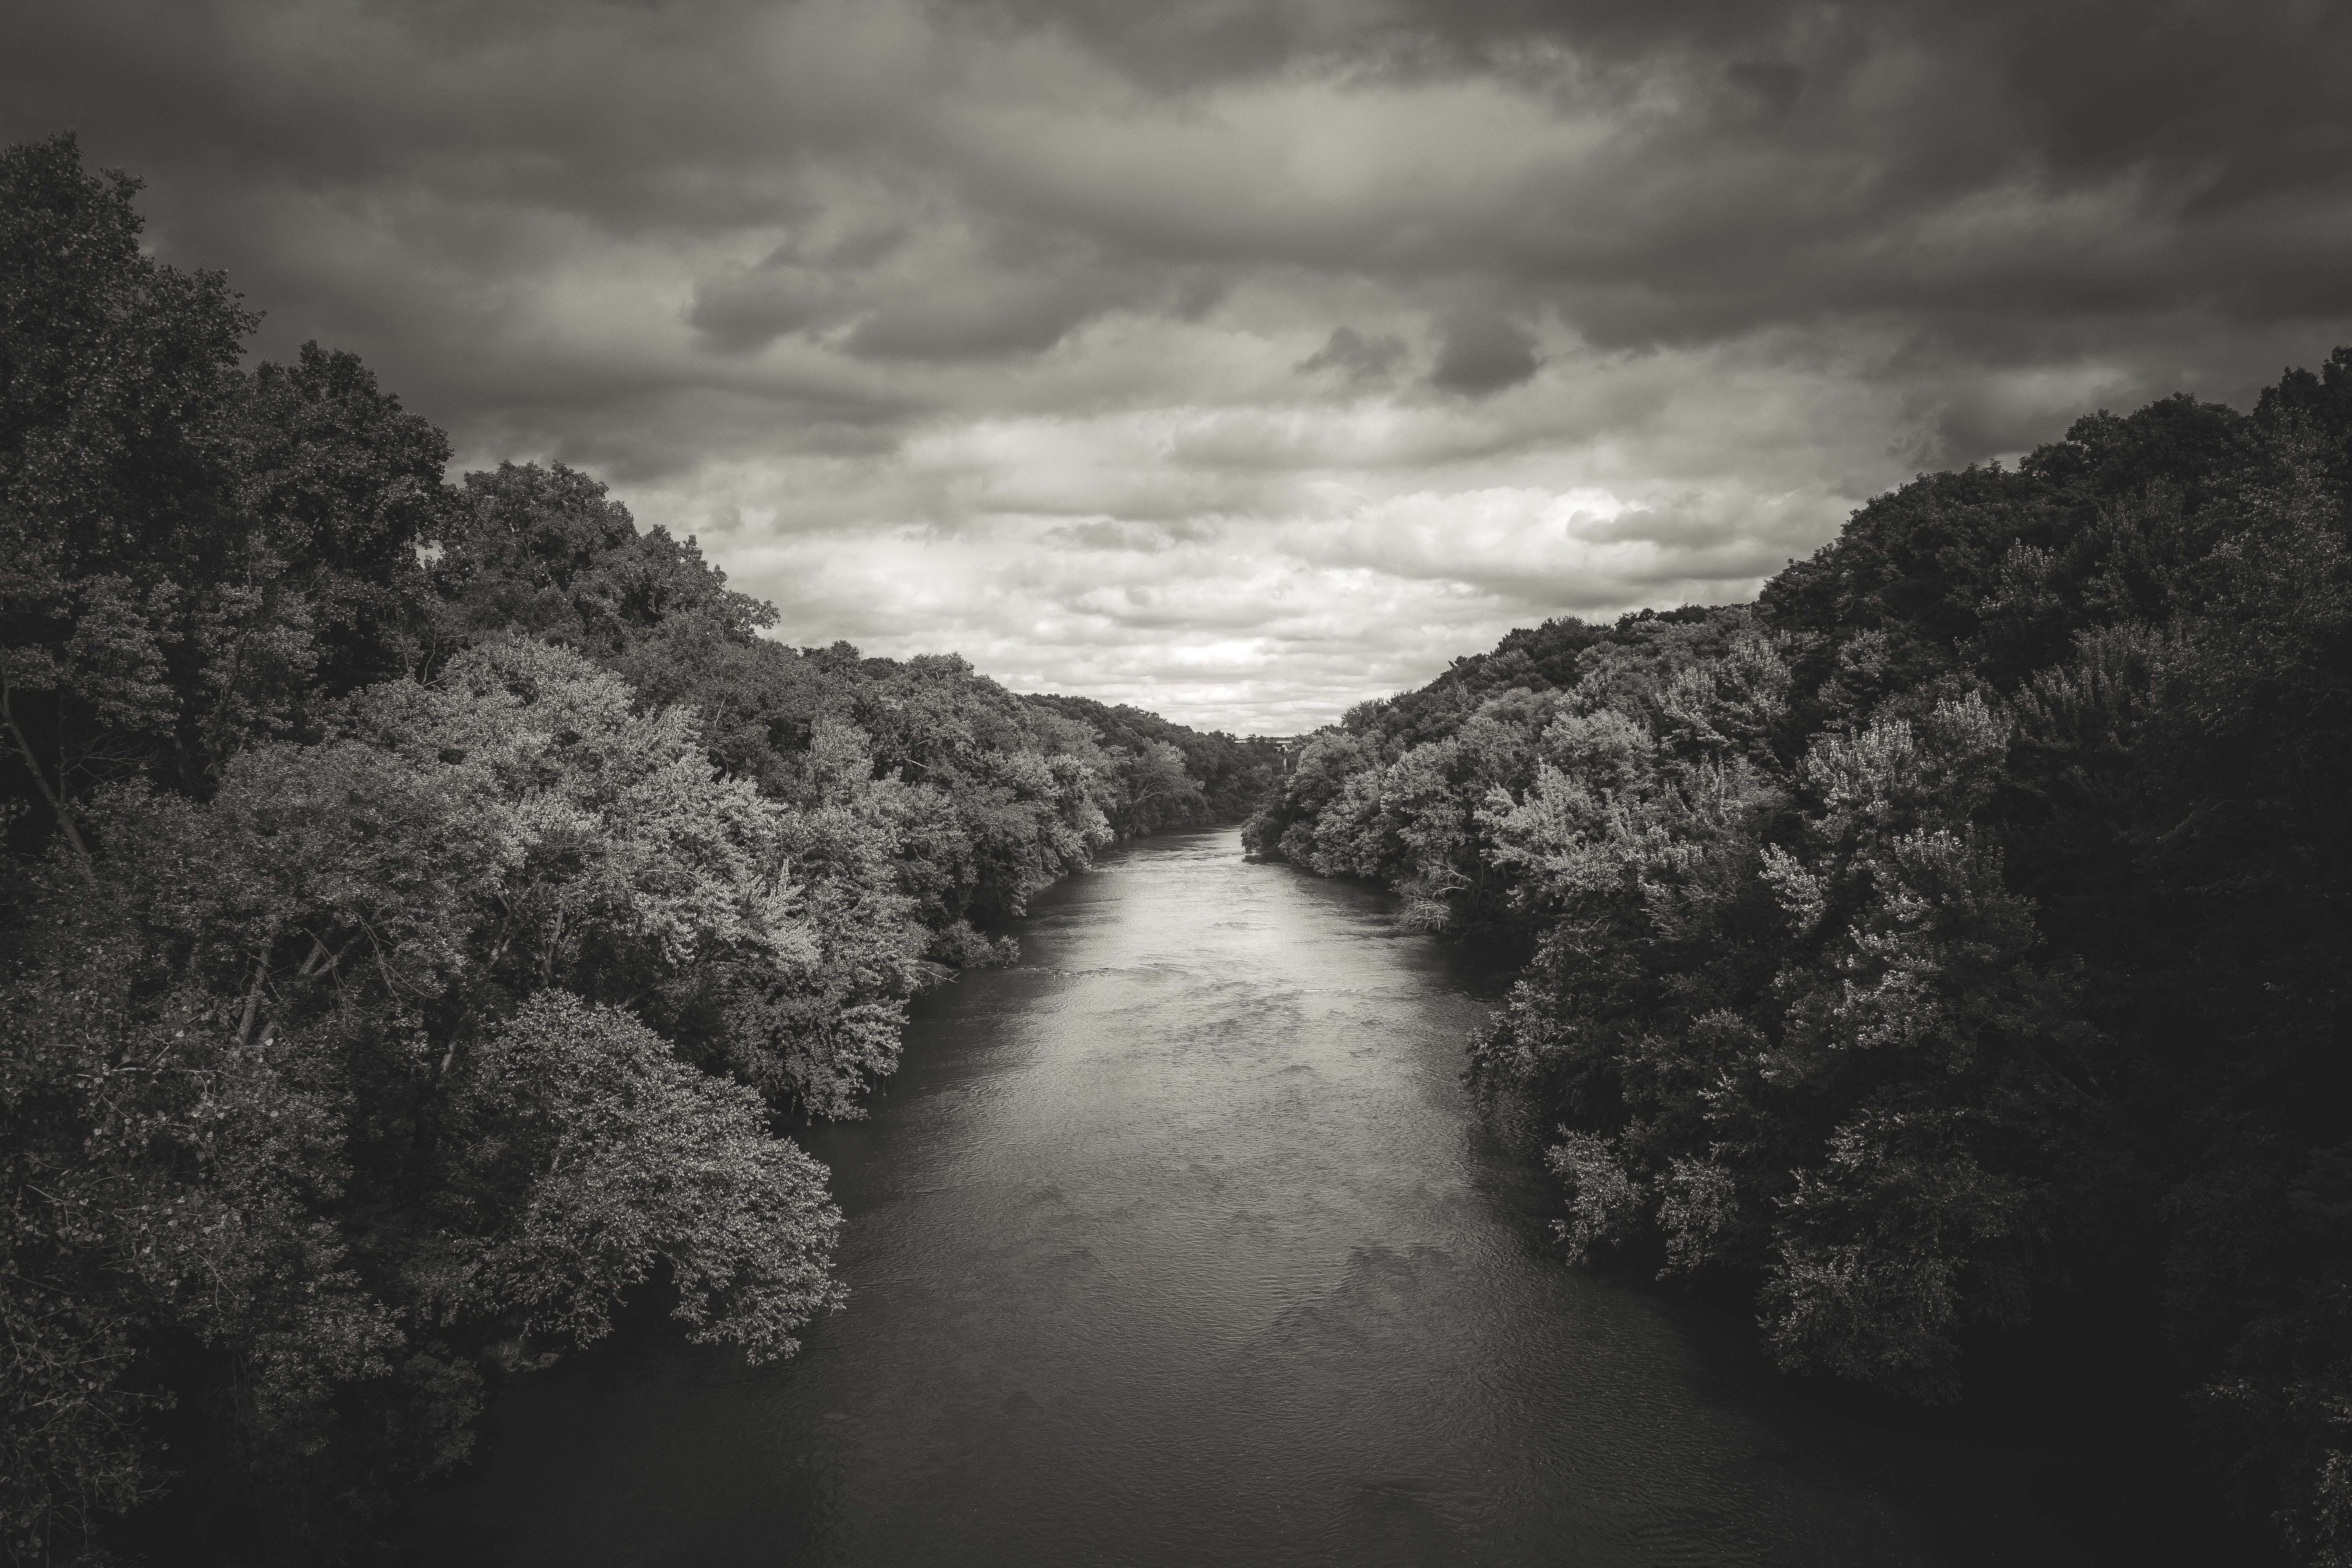 Free stock photo of storm, trees, river, faded